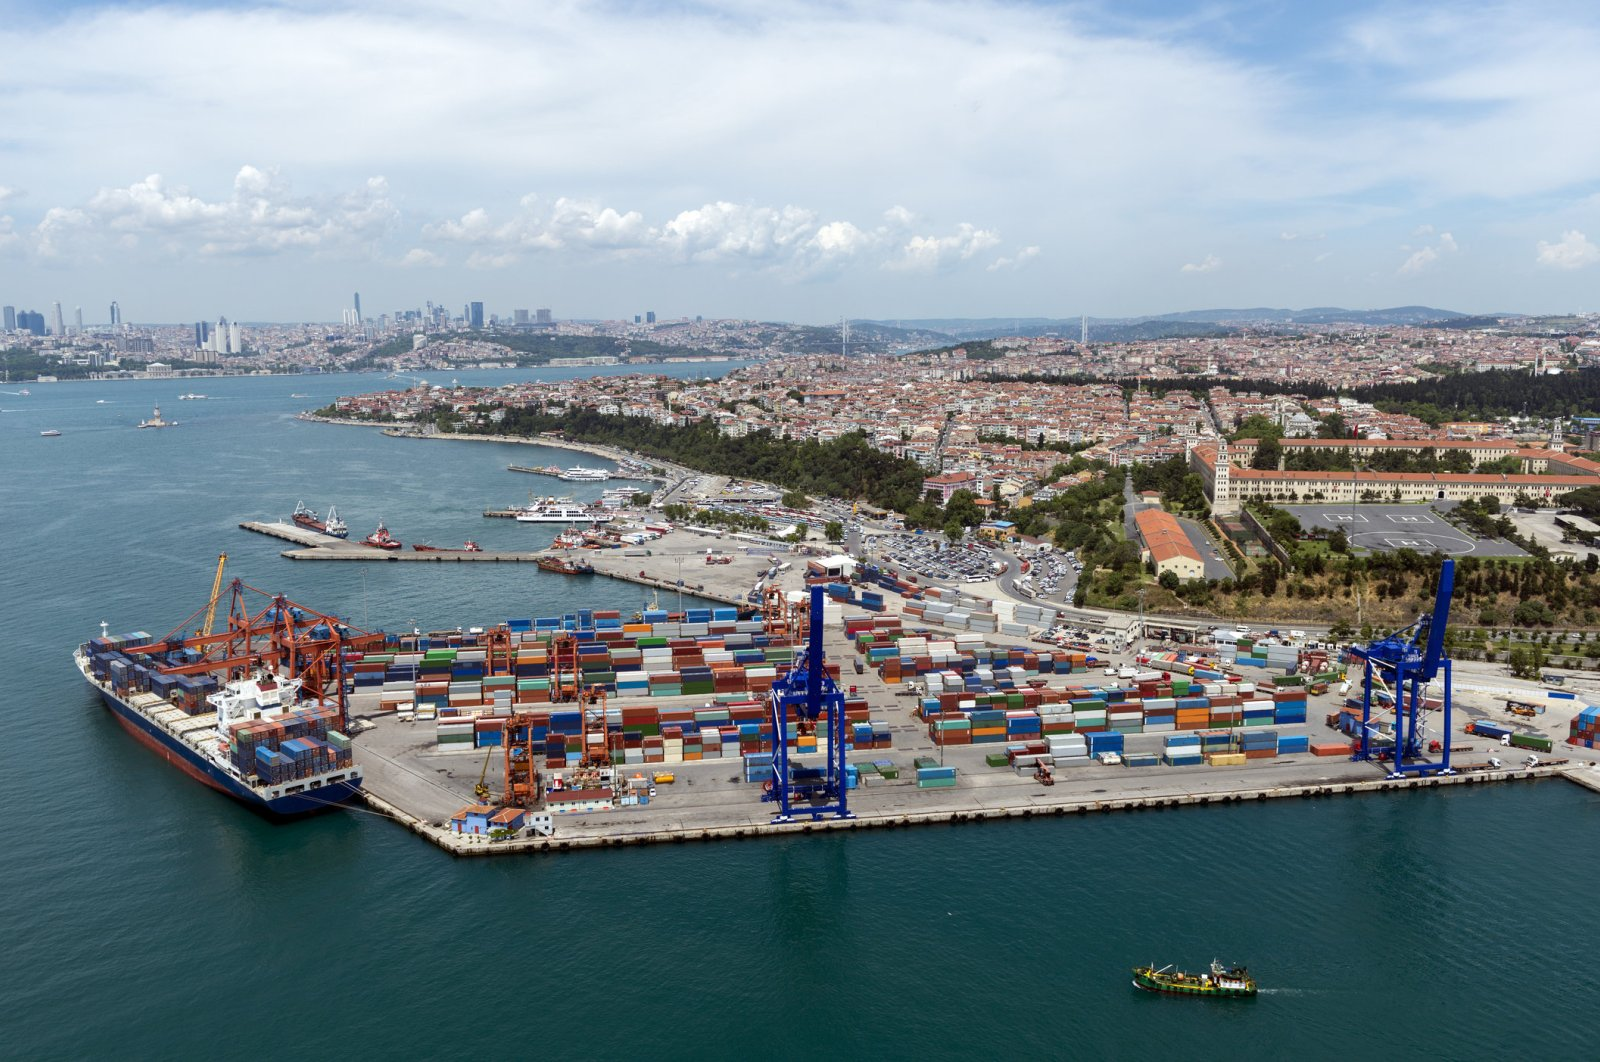 Aerial view of the container port and ship in Haydarpaşa Istanbul, Turkey. (Getty Images)